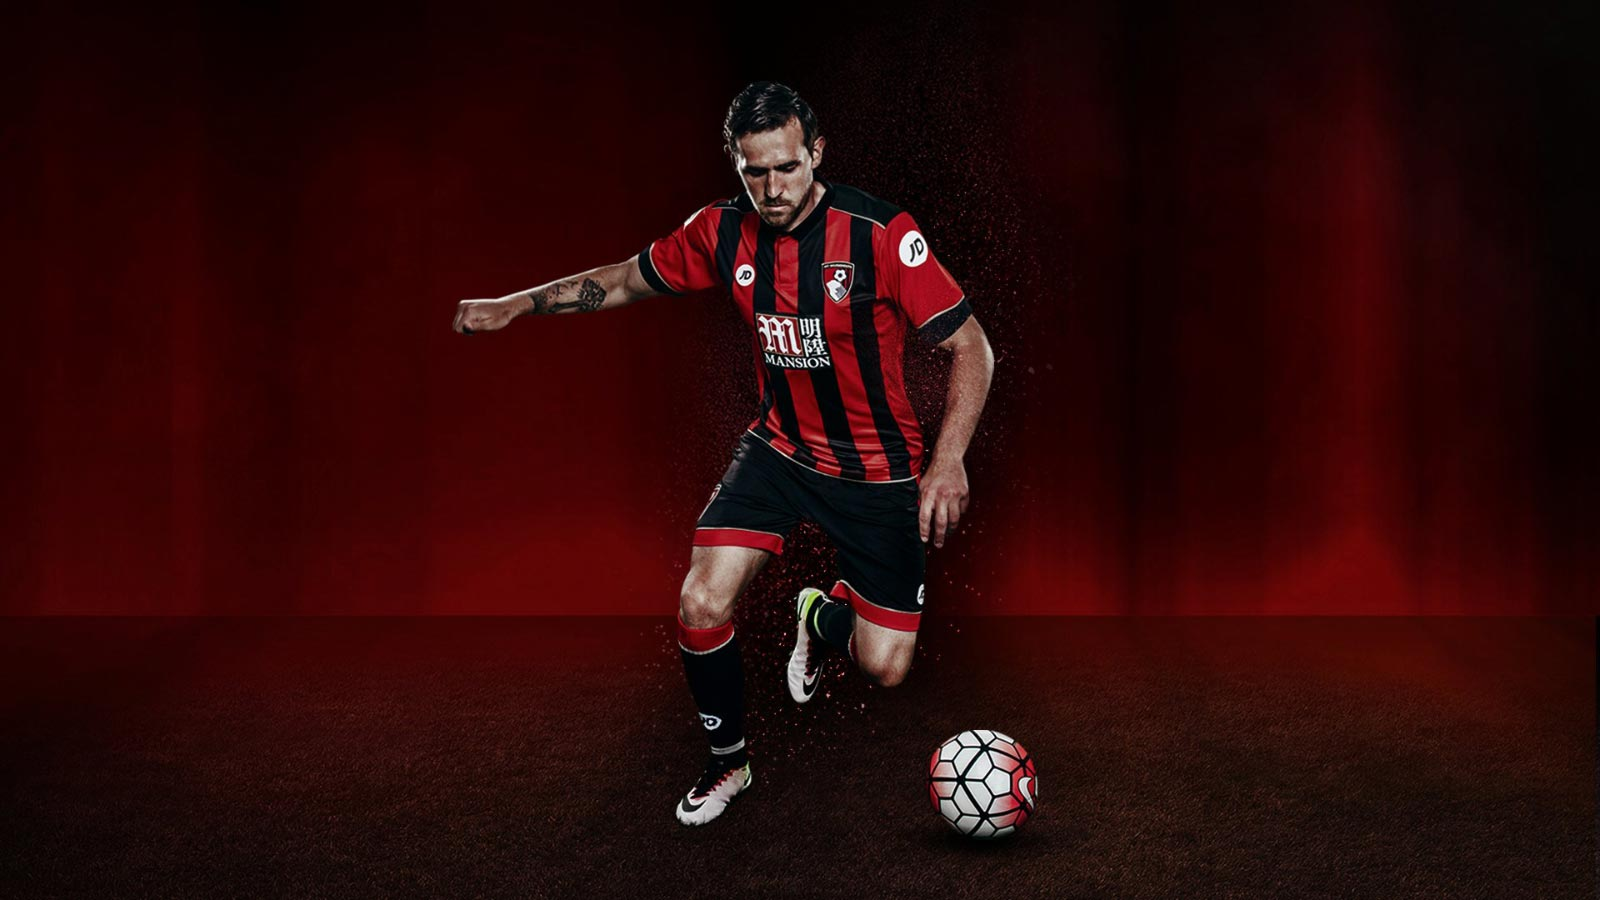 bournemouth-2016-17 home kit front view